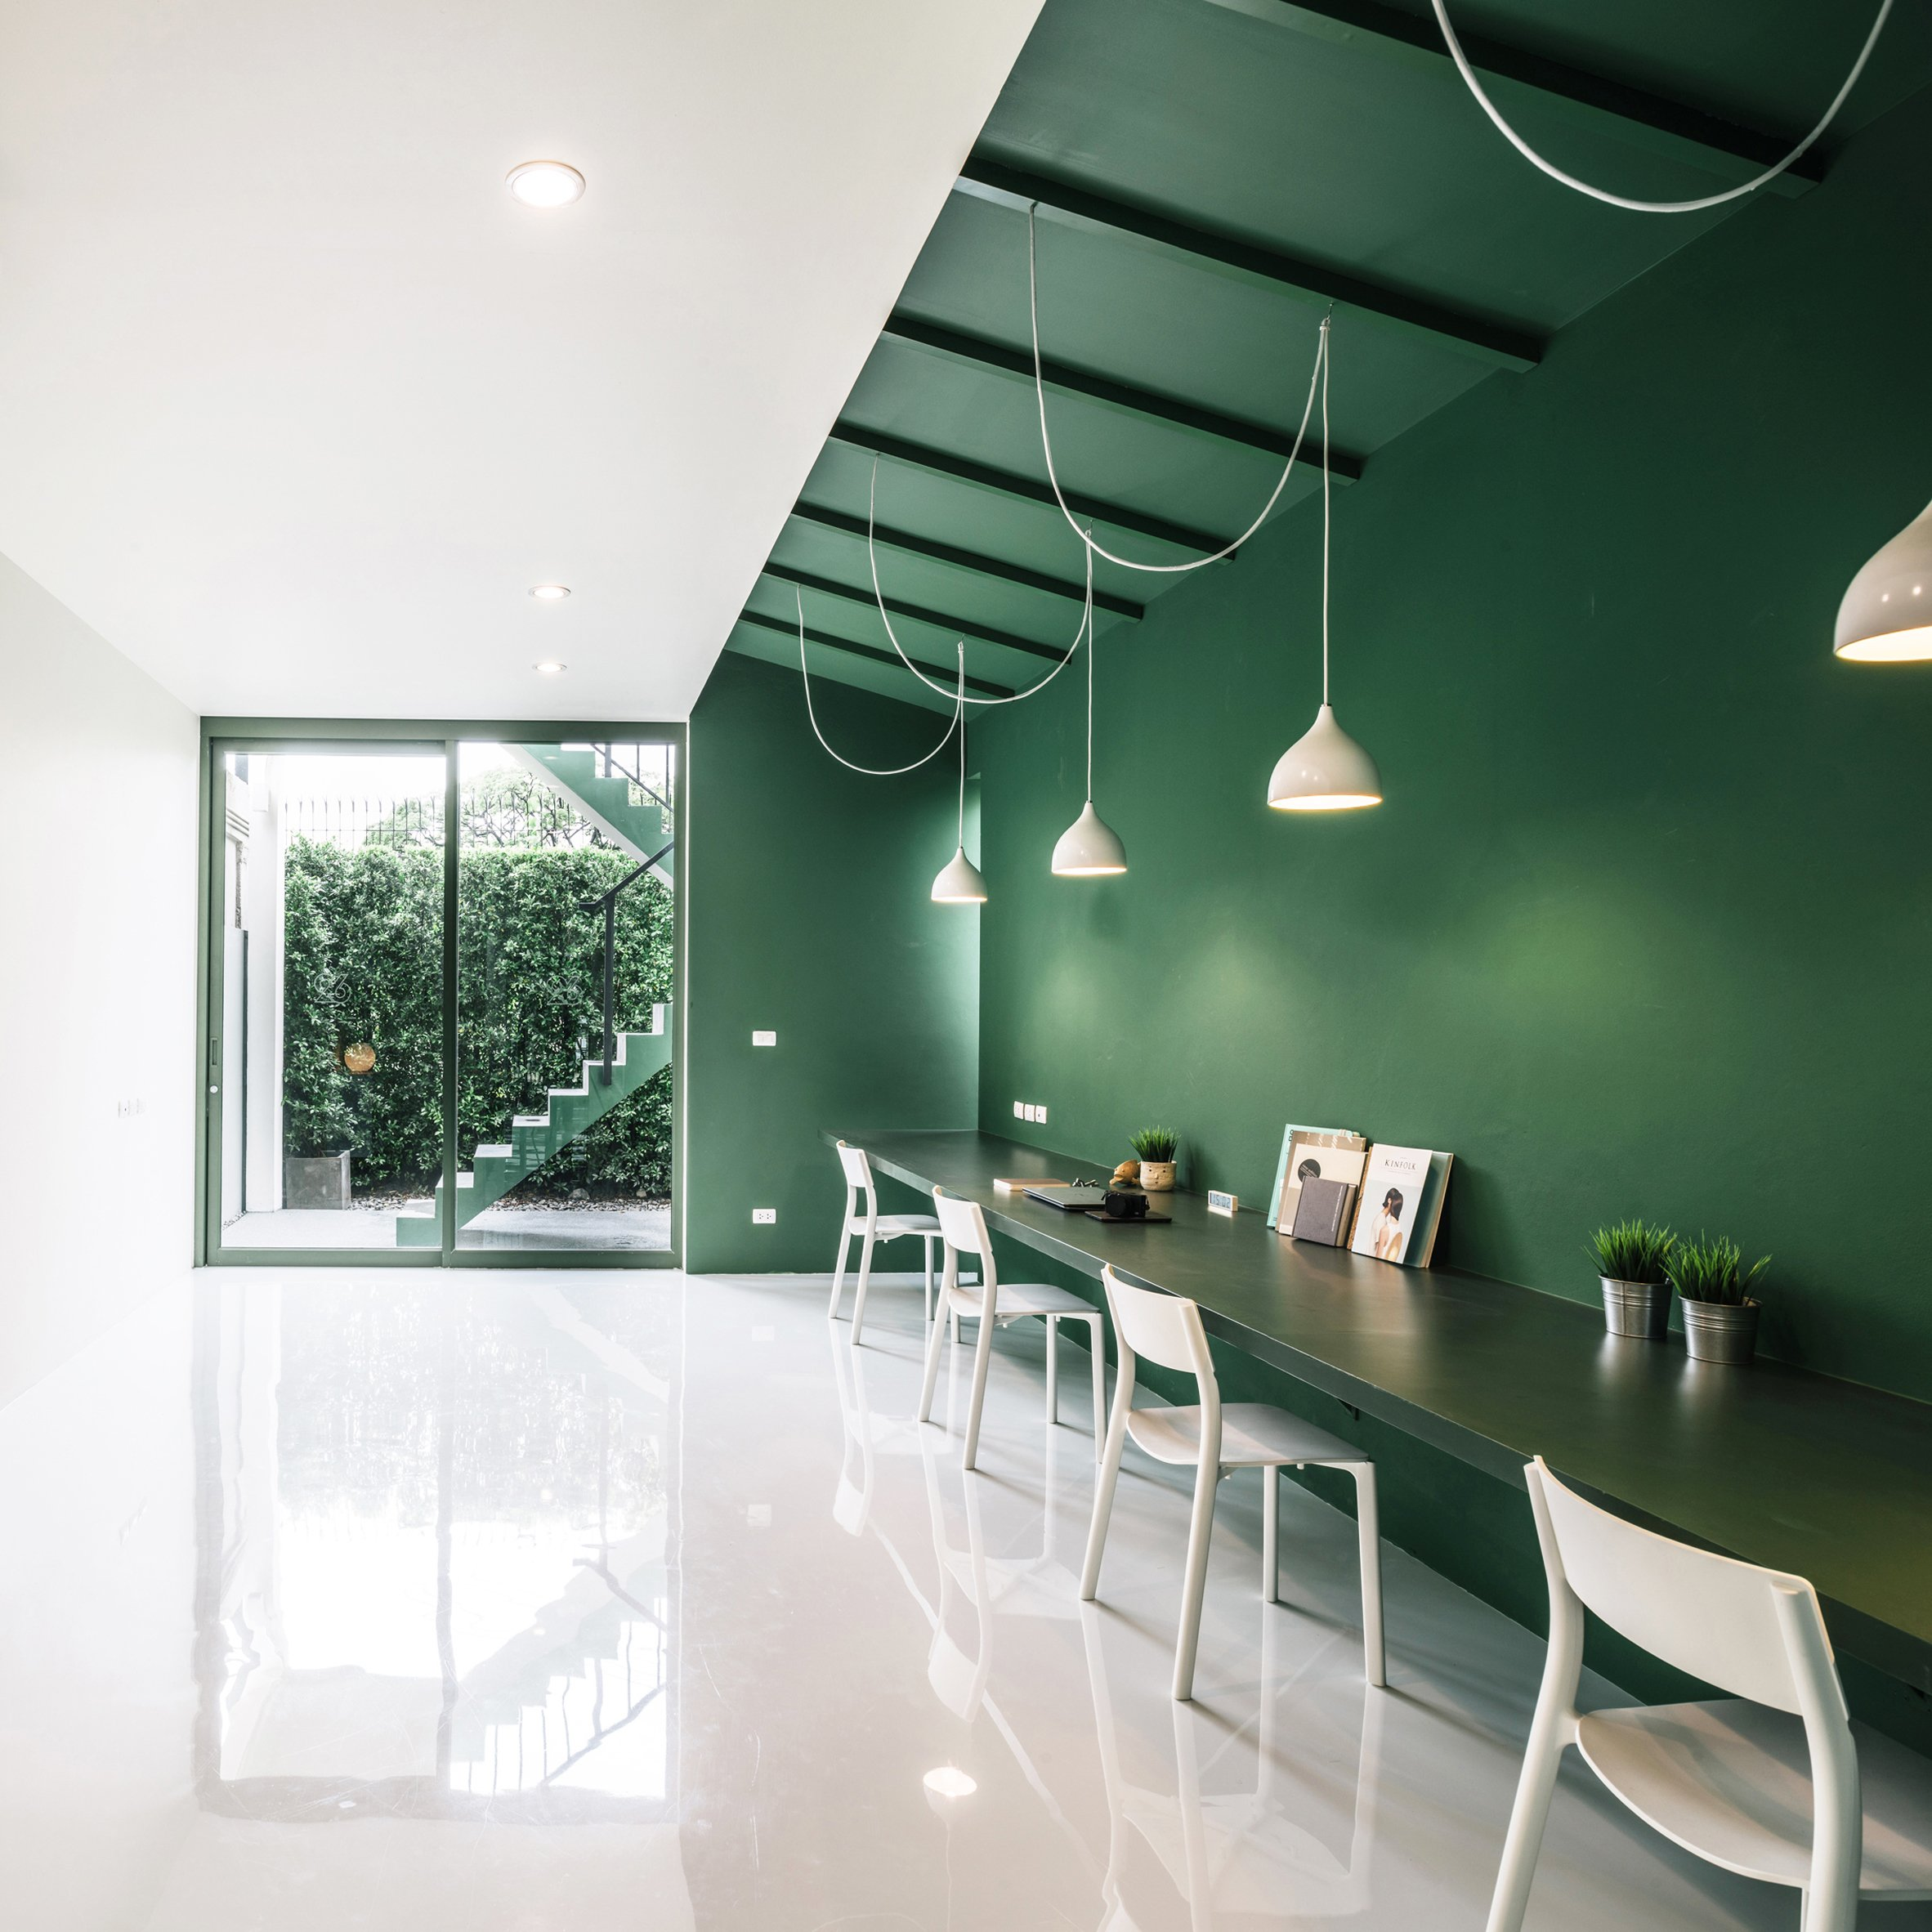 Good 12 Of The Best Minimalist Office Interiors Where Thereu0027s Space To Think